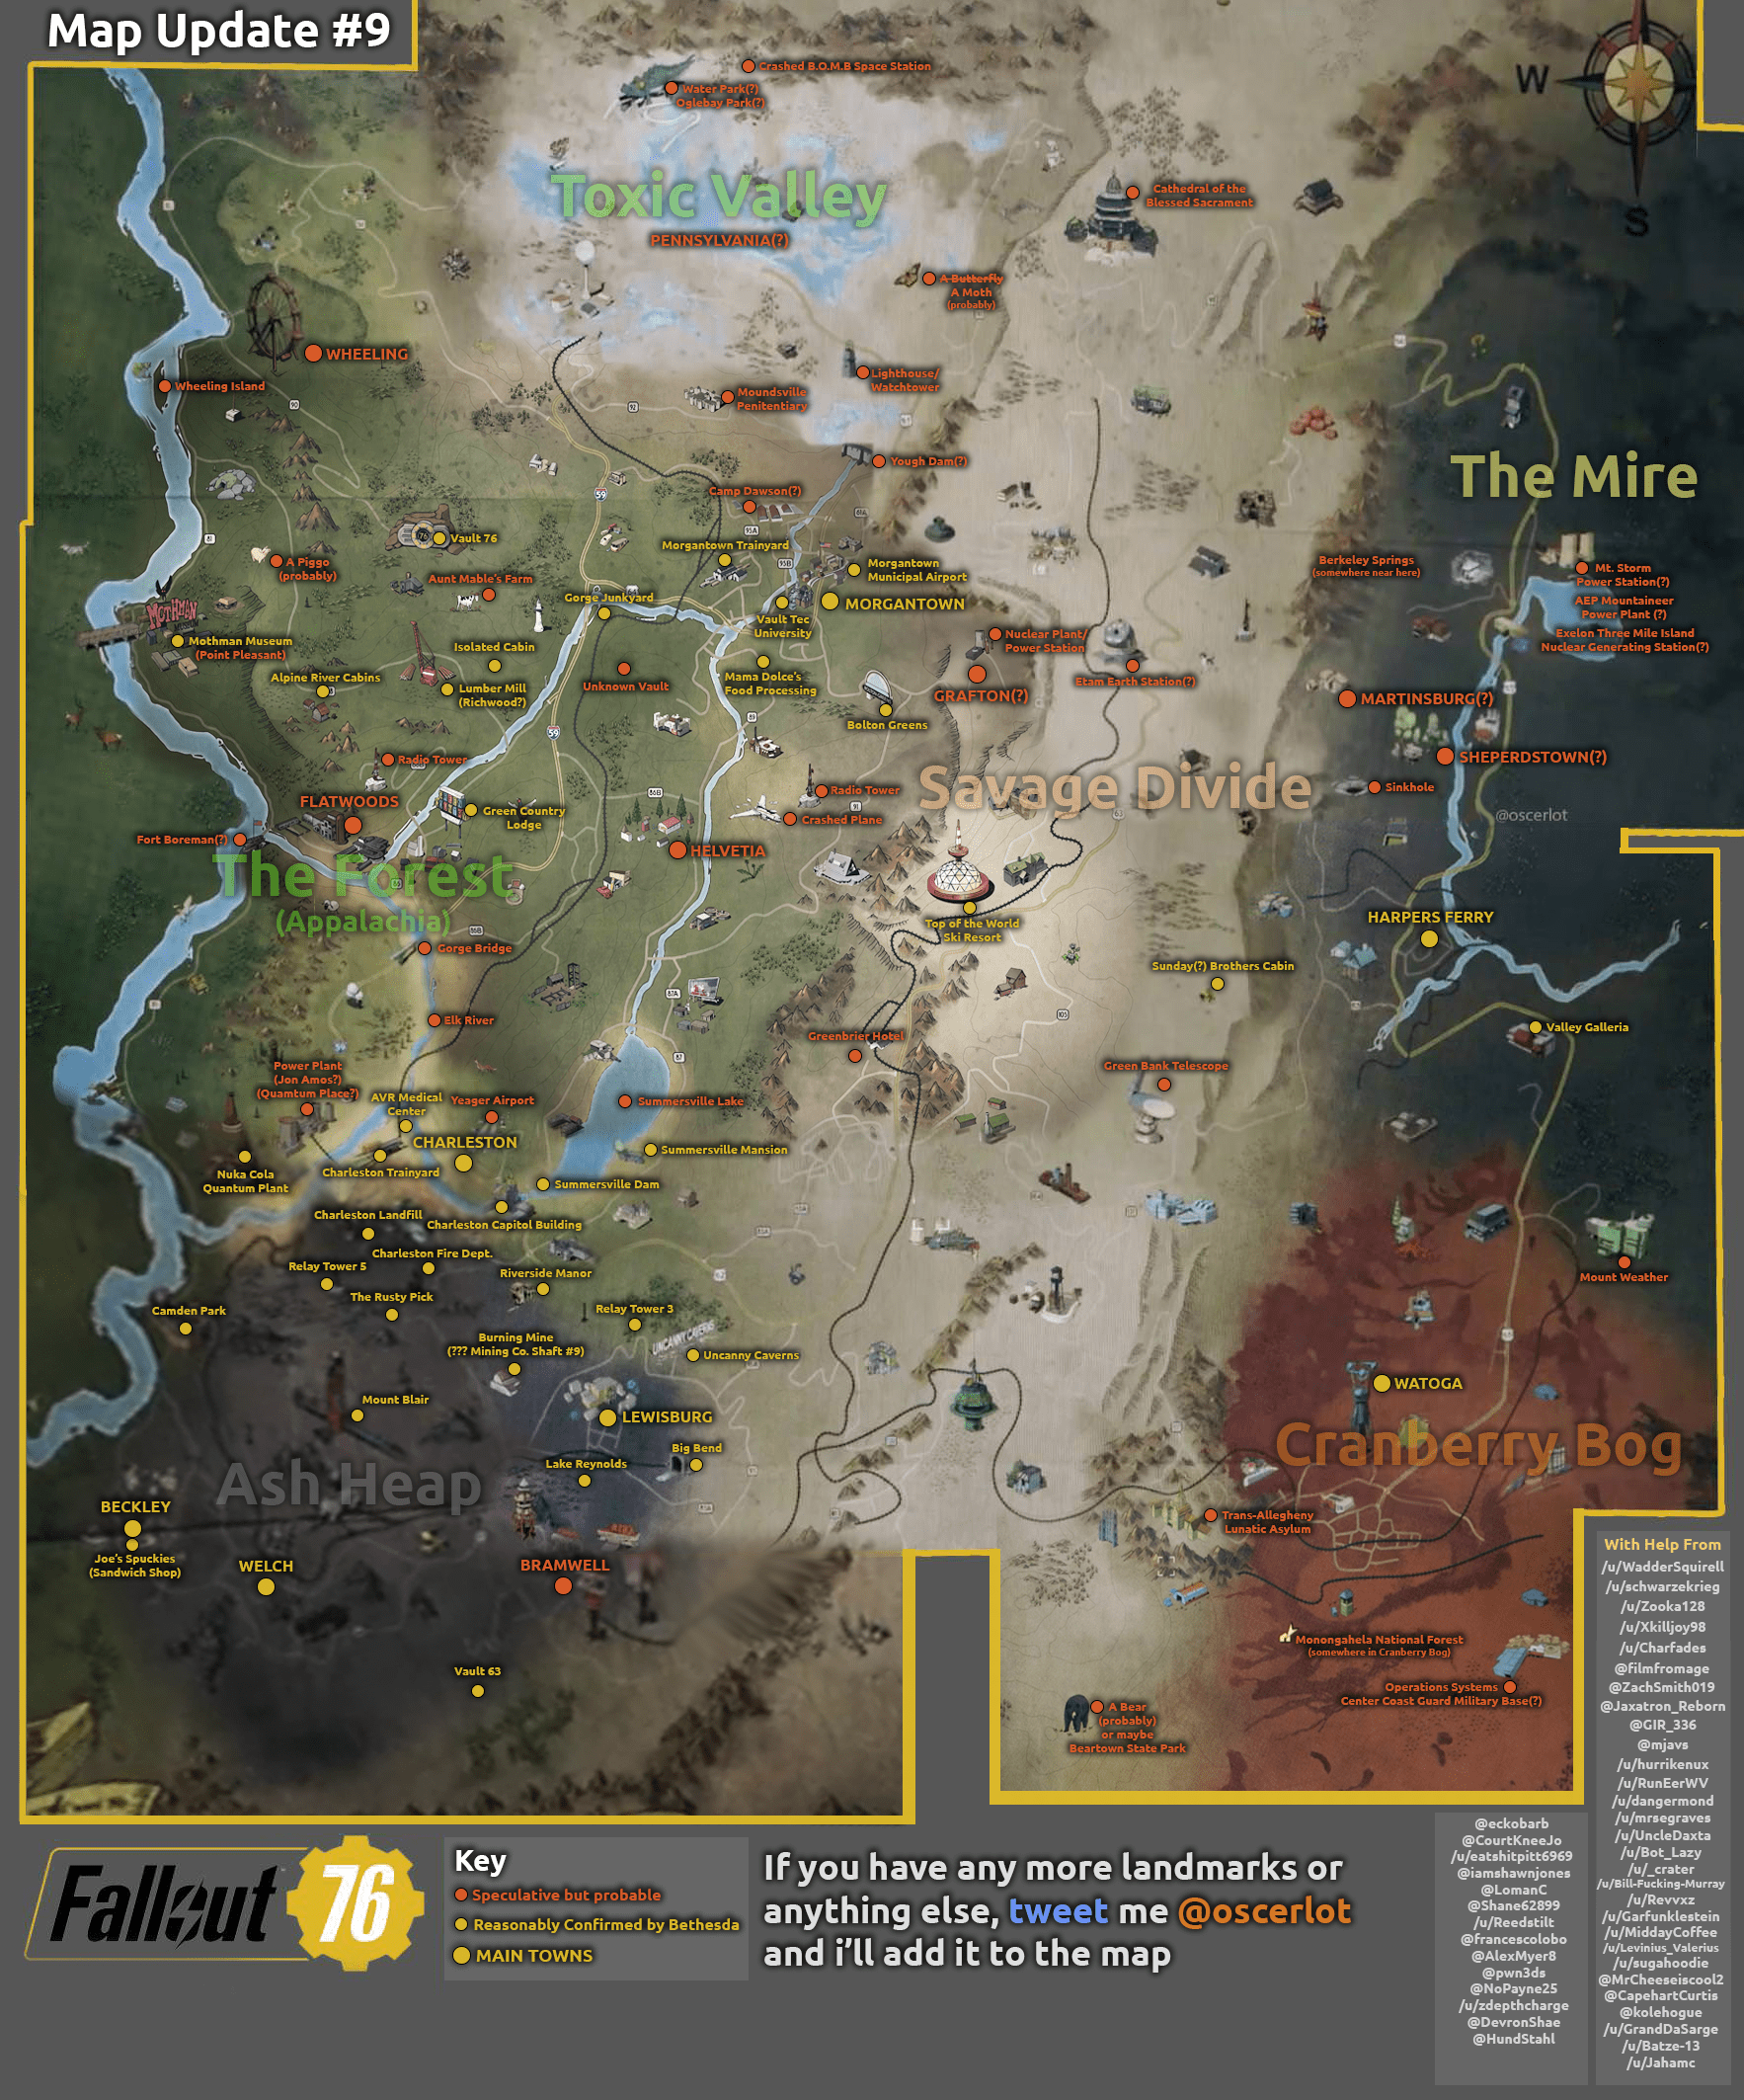 Fallout 76 map  all confirmed and possible locations   VG247 Click the link above that image for a better view  Some of the confirmed  locations include Top of the World Ski Resort  Watoga  Lewisburg  Beckley